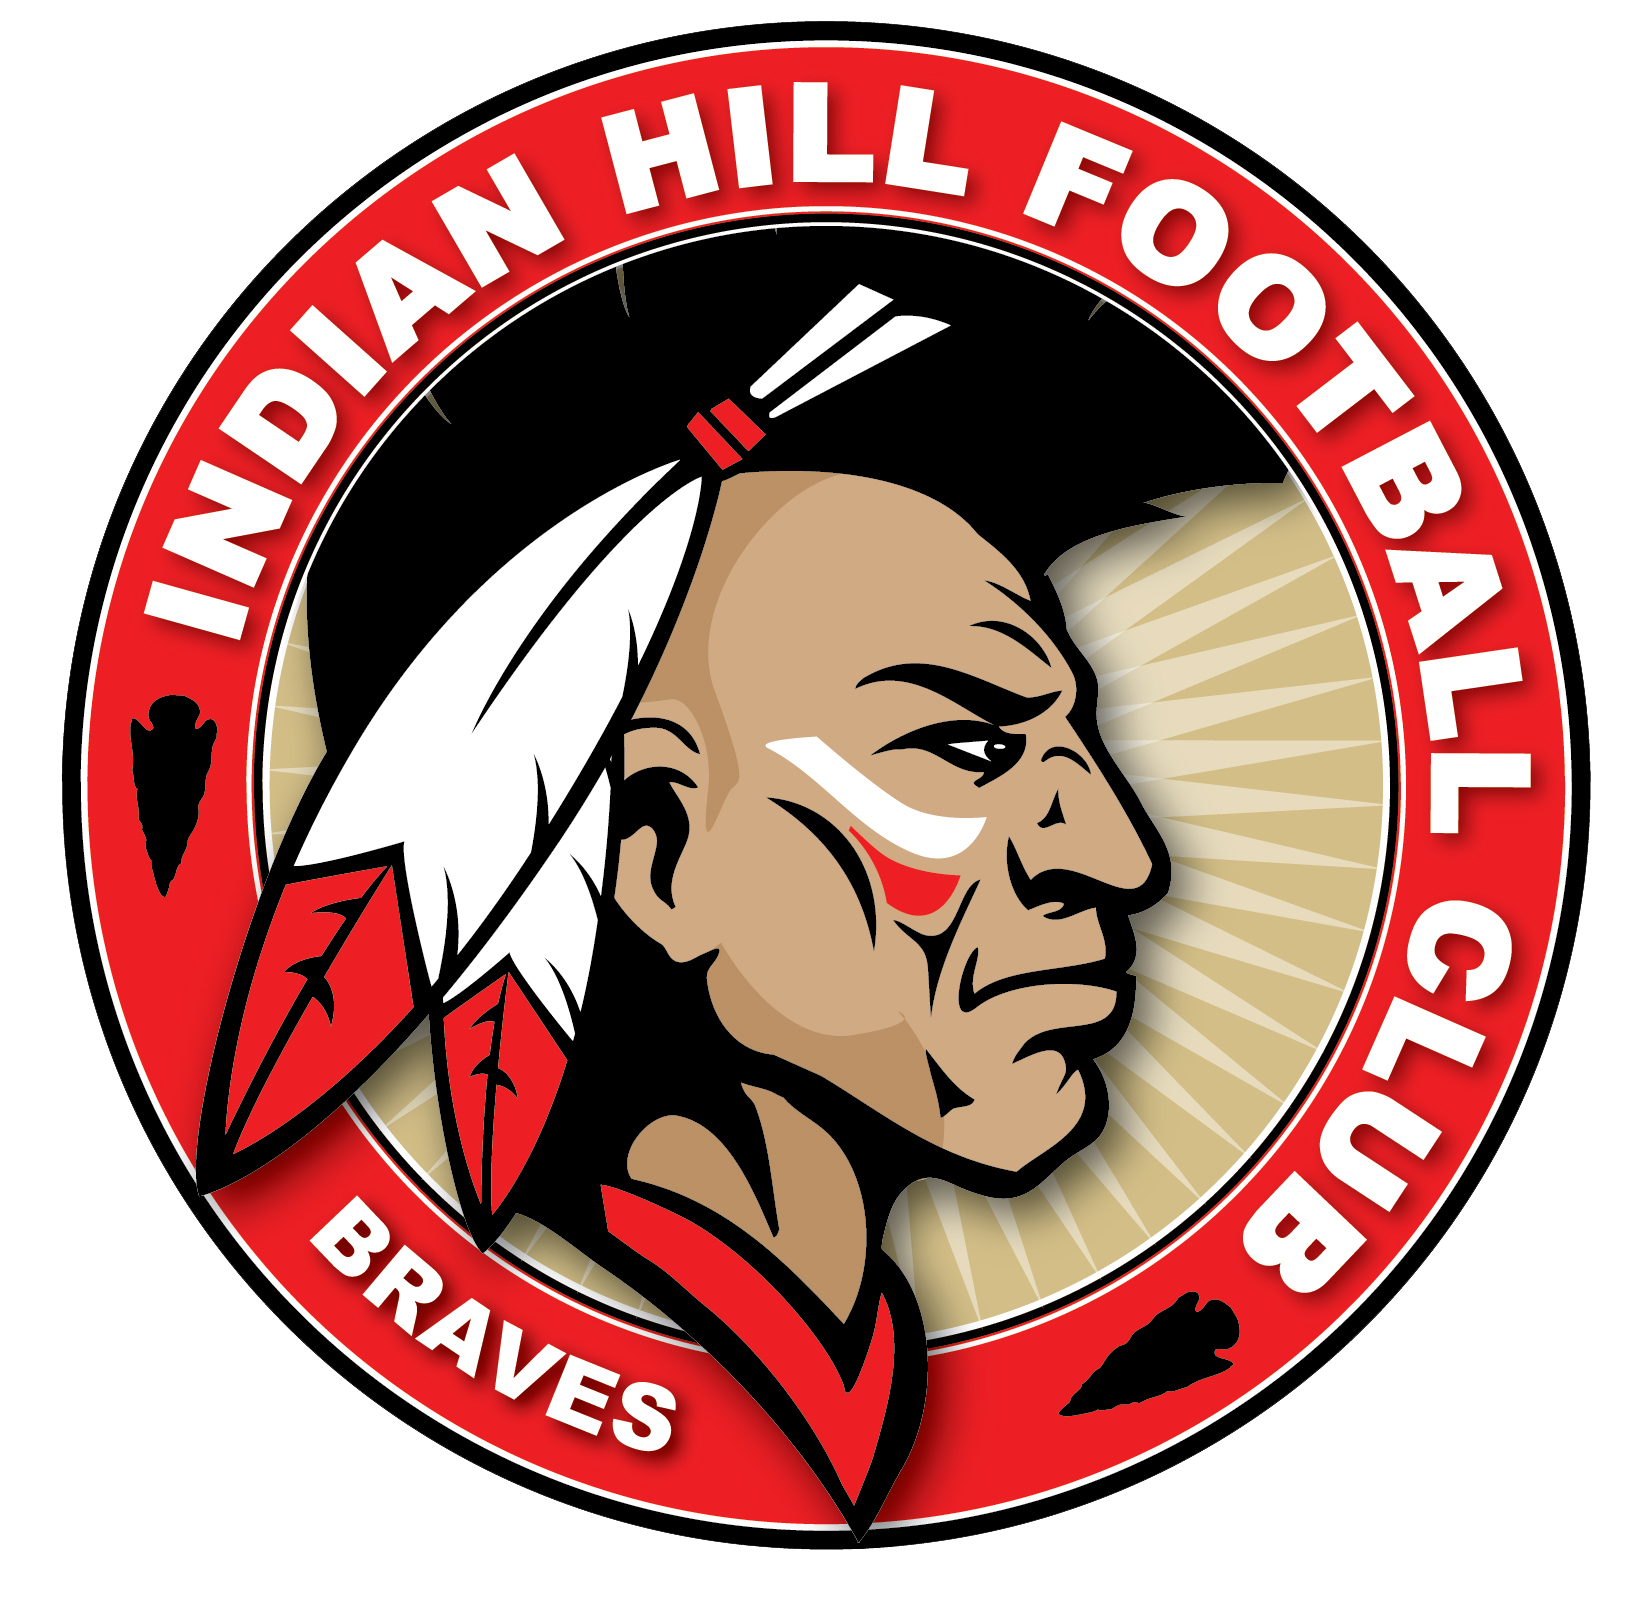 Twin valley football clipart clip library stock Indian hill football club logo braves sports | Mascot Branding And ... clip library stock